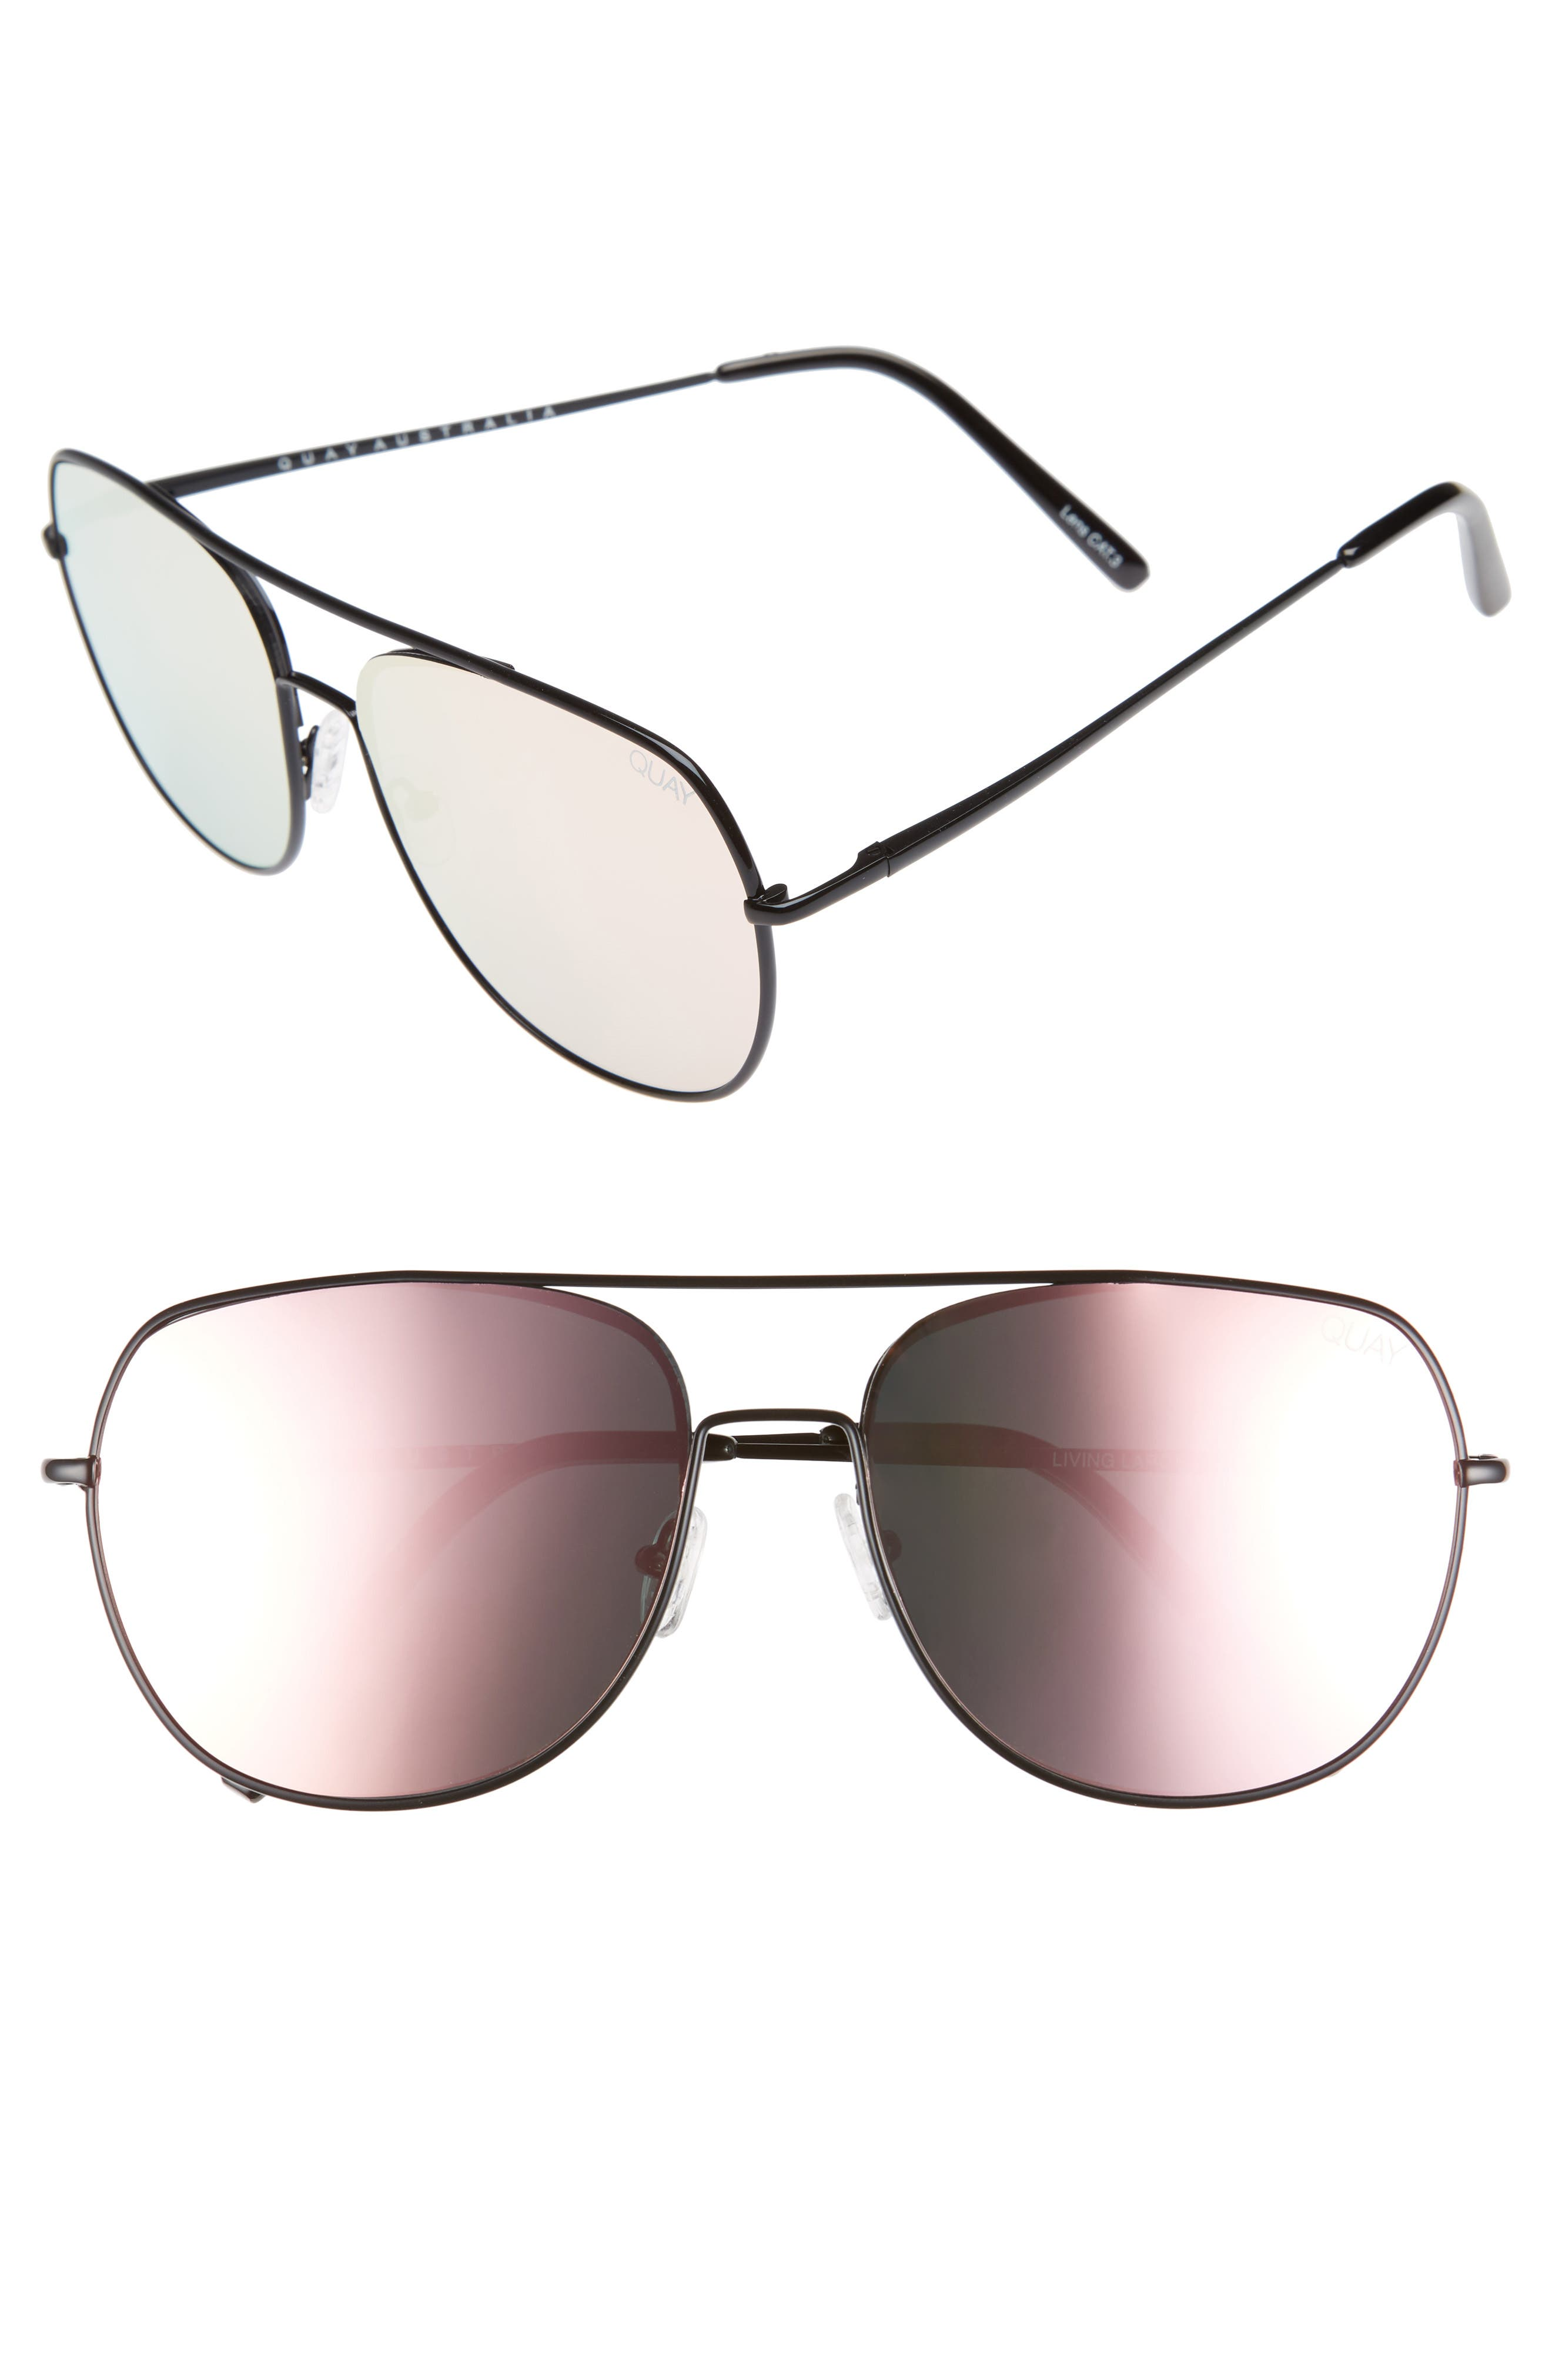 Main Image - Quay Australia Living Large 60mm Mirrored Aviator Sunglasses